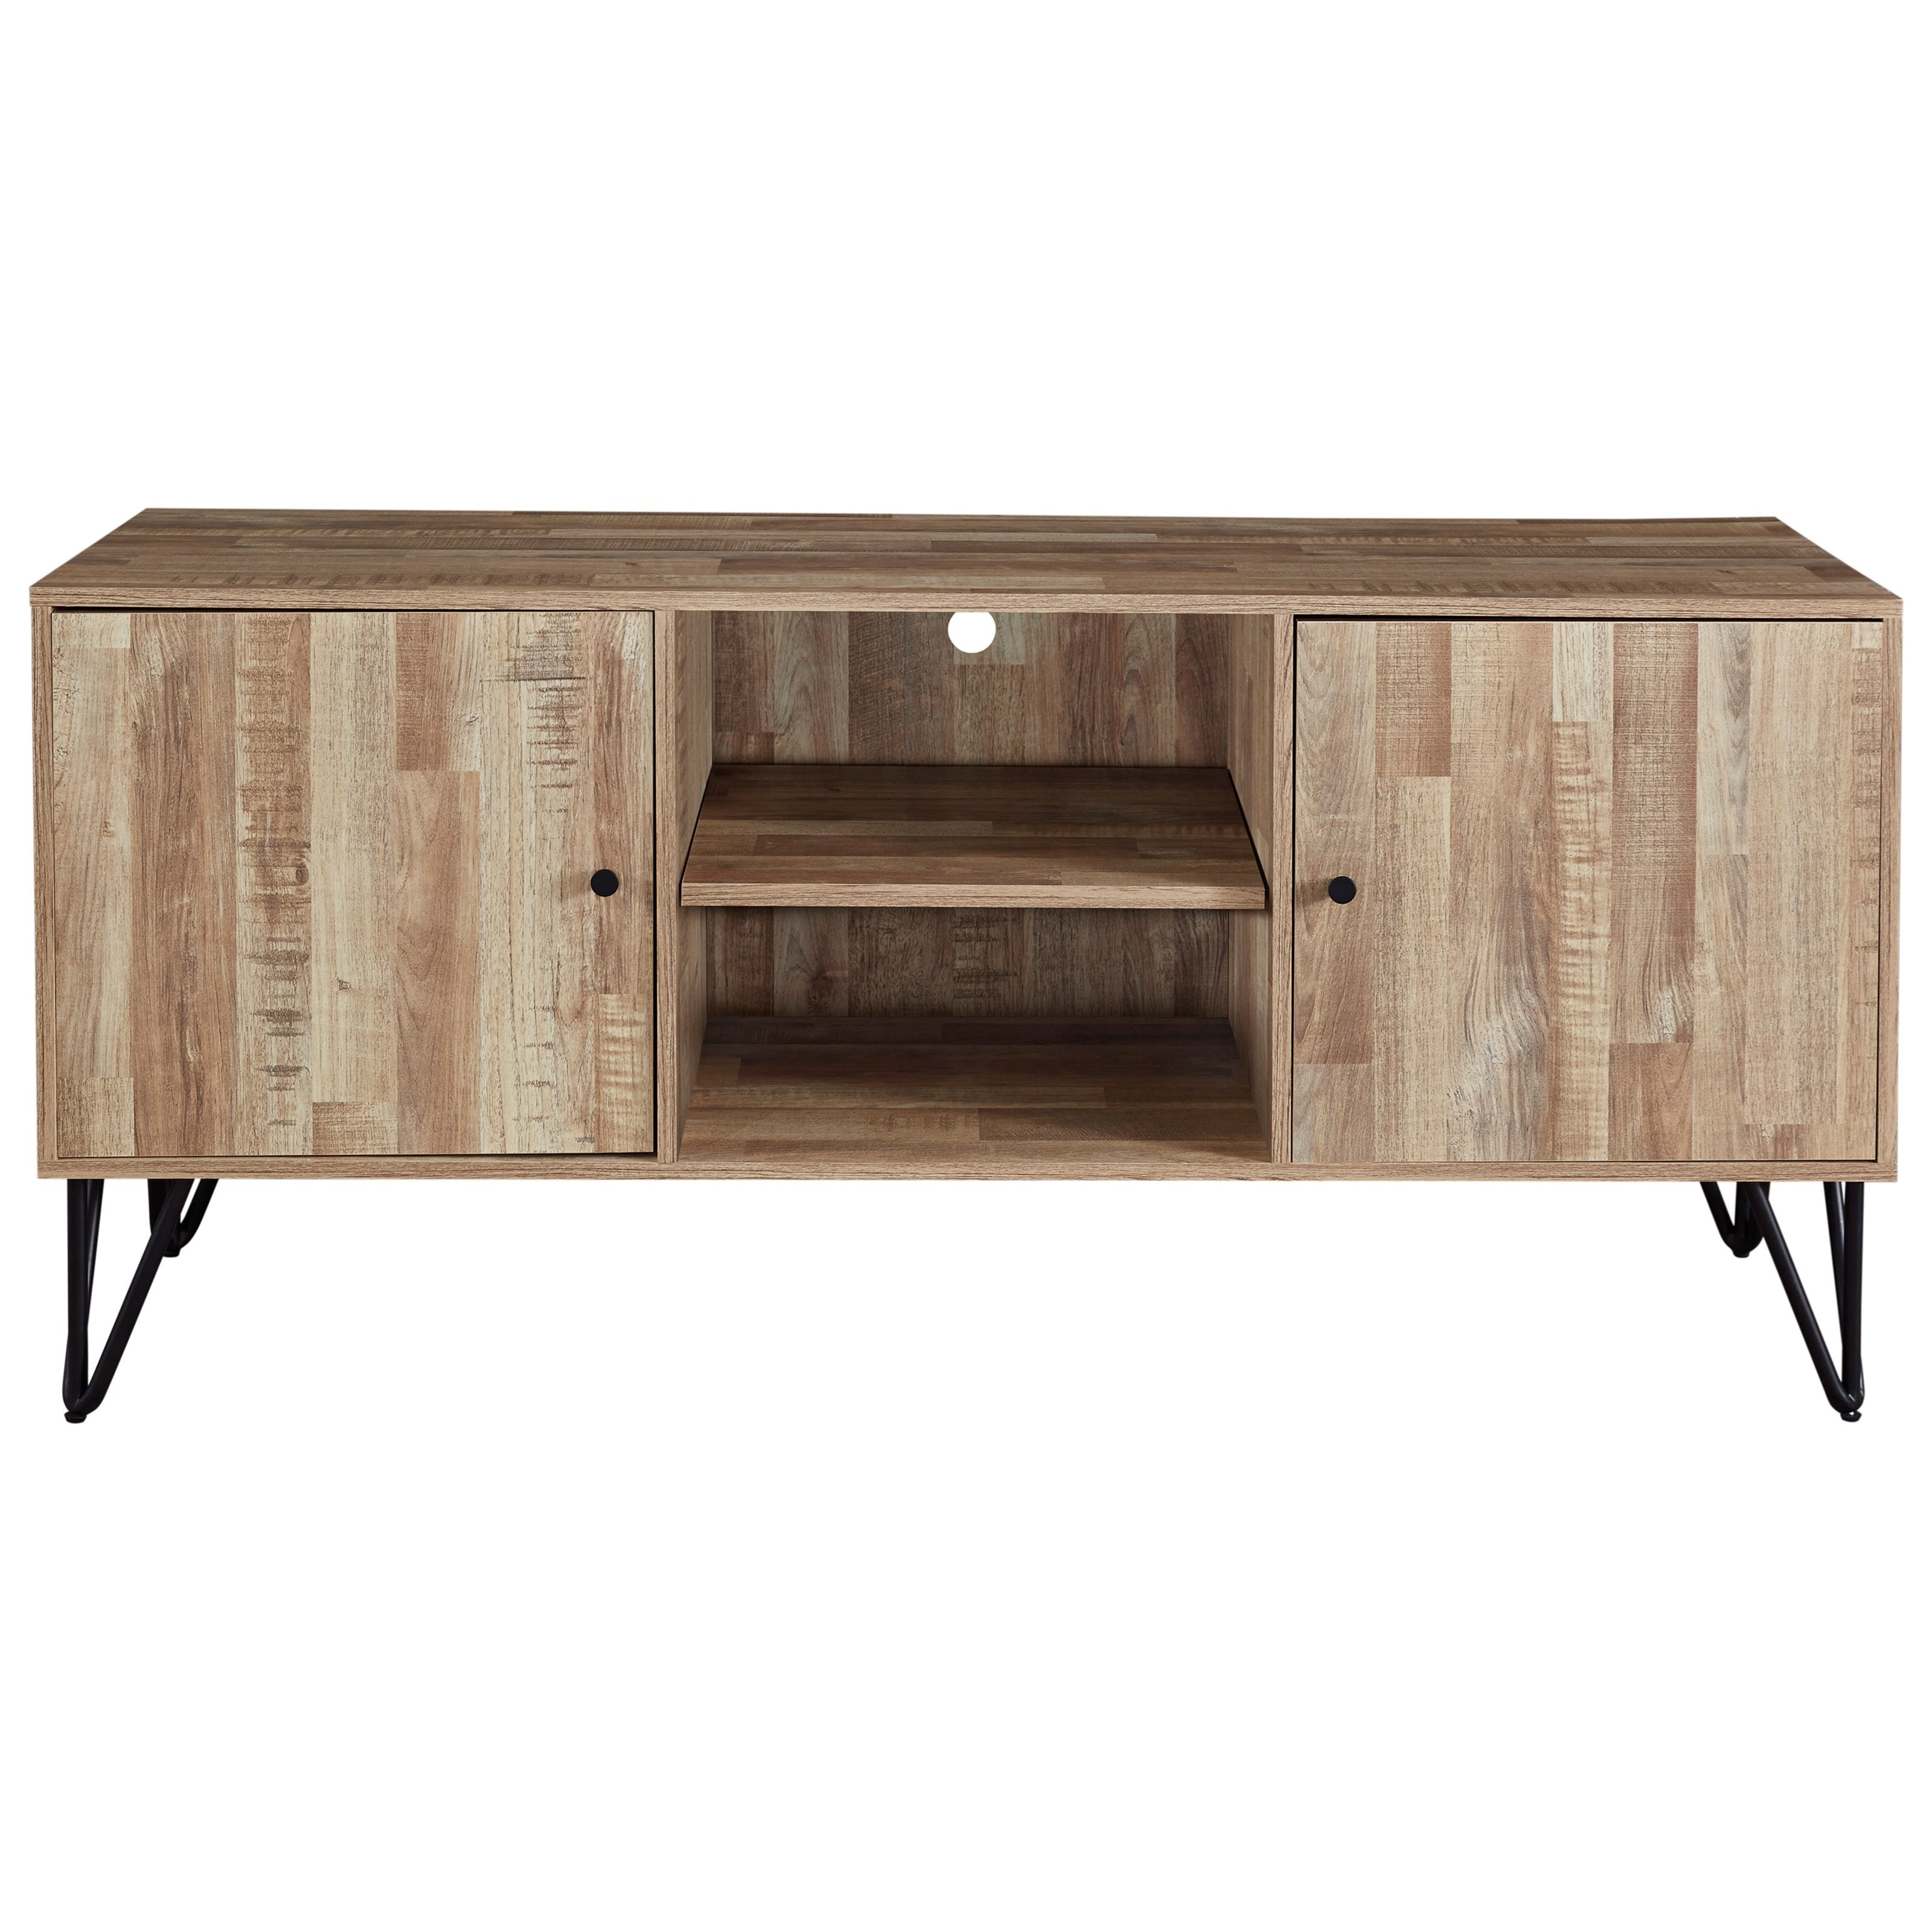 Gerdanet Large TV Stand by Signature Design by Ashley at Smart Buy Furniture